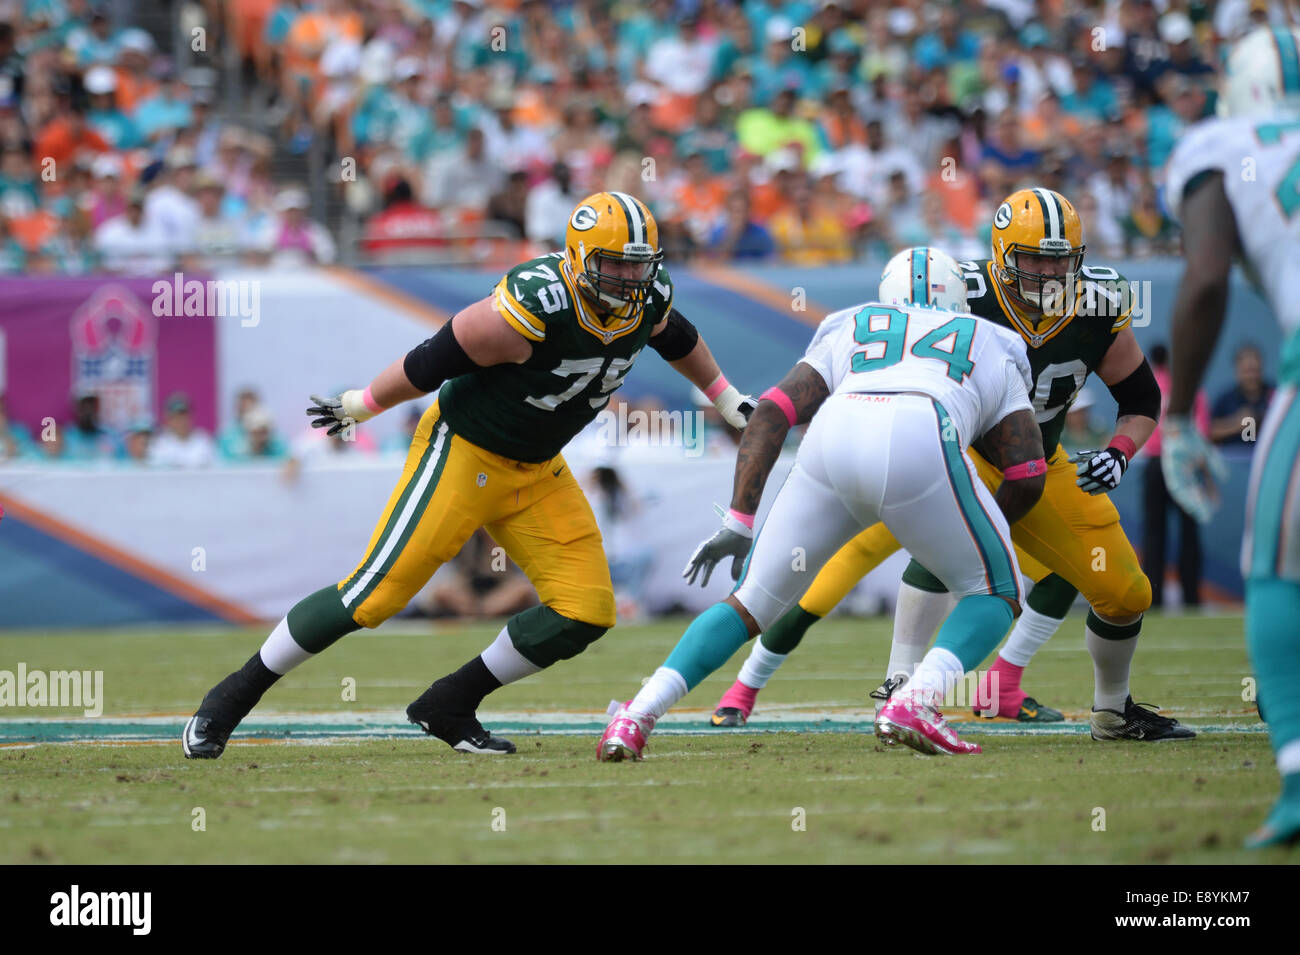 Miami Gardens FL USA 12th Oct 2014 Bryan Bulaga 75 of Green